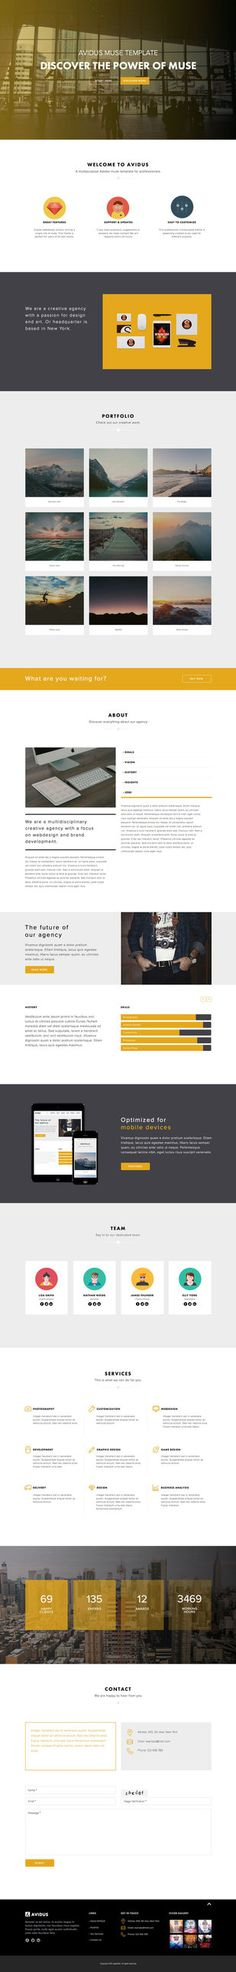 Molar - Adobe Muse Template by mindblister - Dribbble